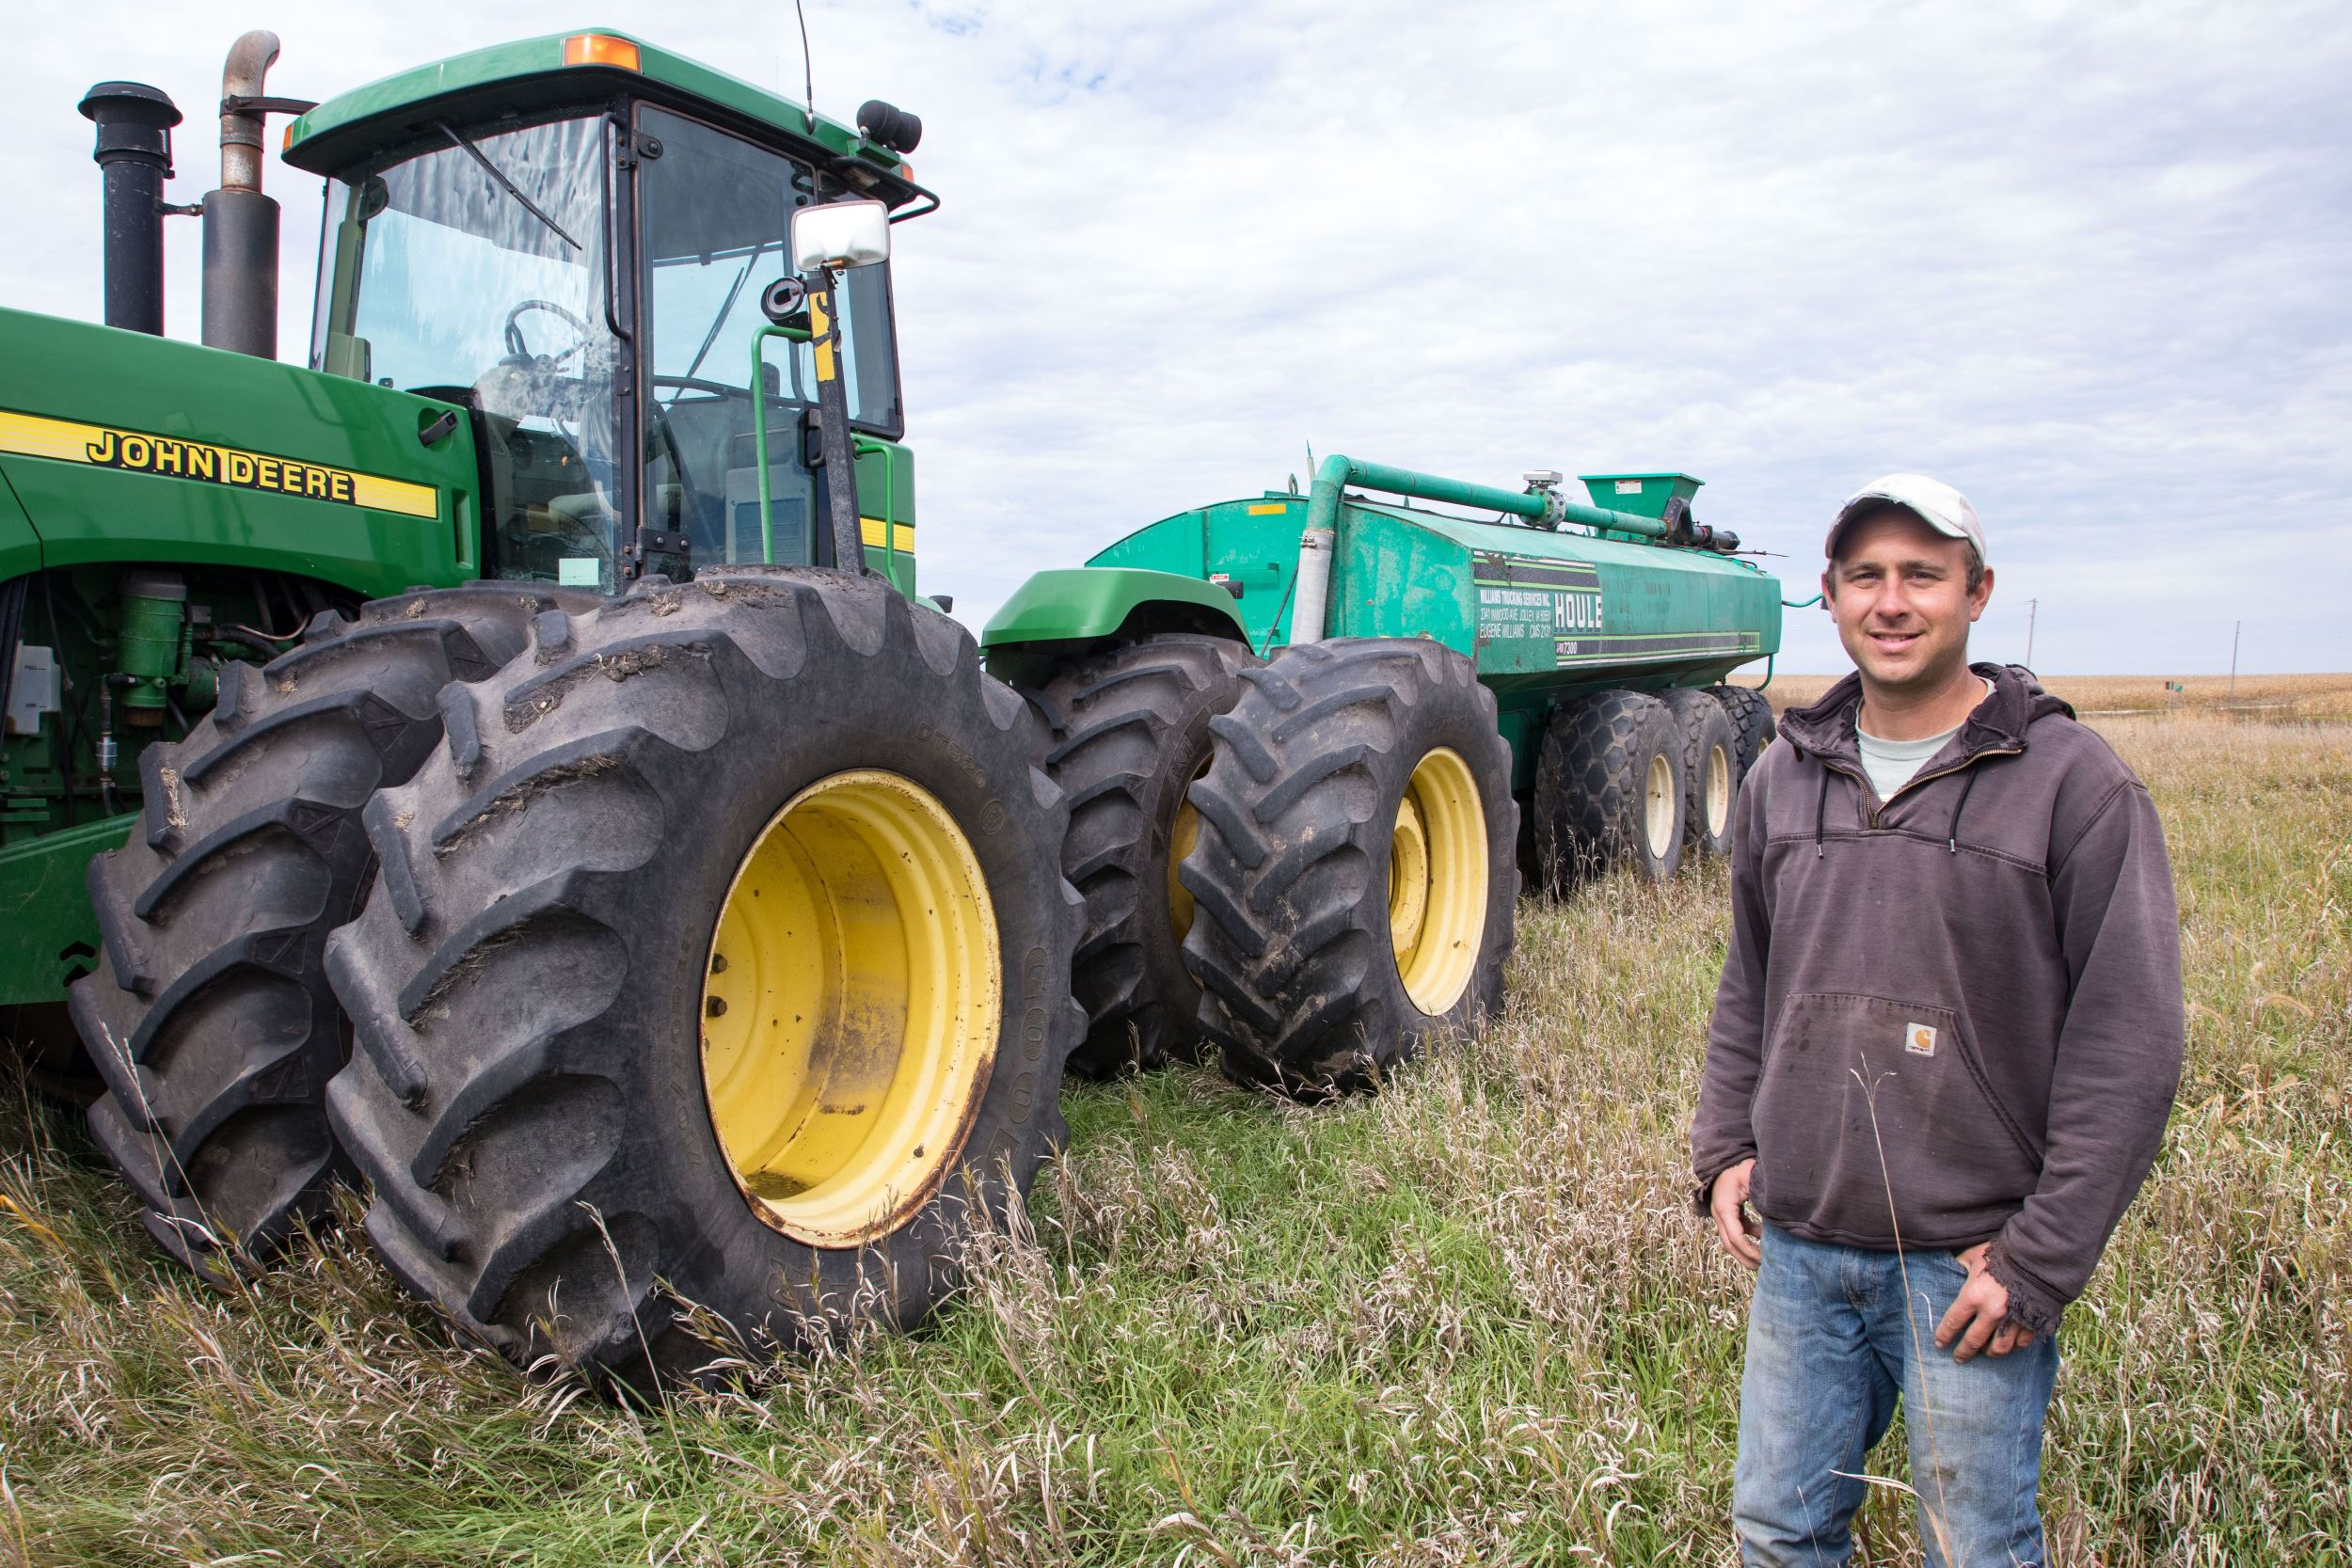 Brandon standing next to his farming equipment